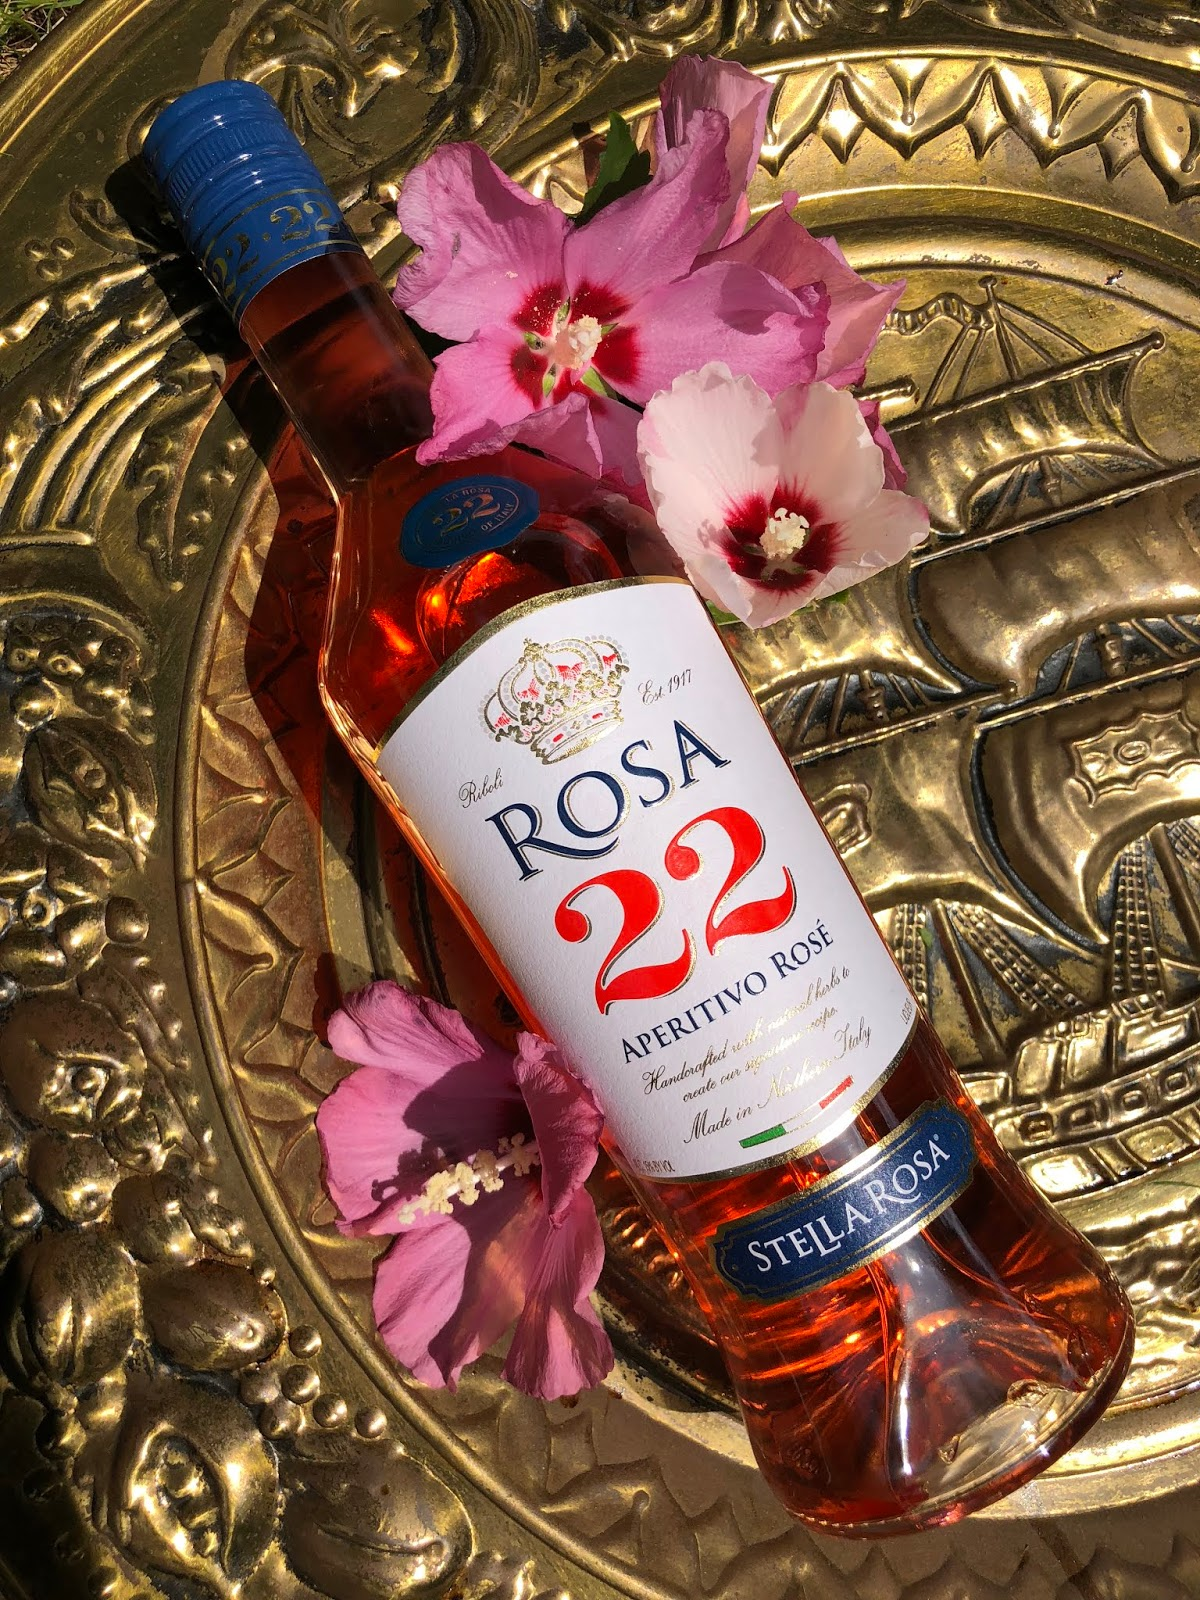 Roses Are Red, Rosés Are Stella: Rosa 22 Aperitivo Rosé from Stella